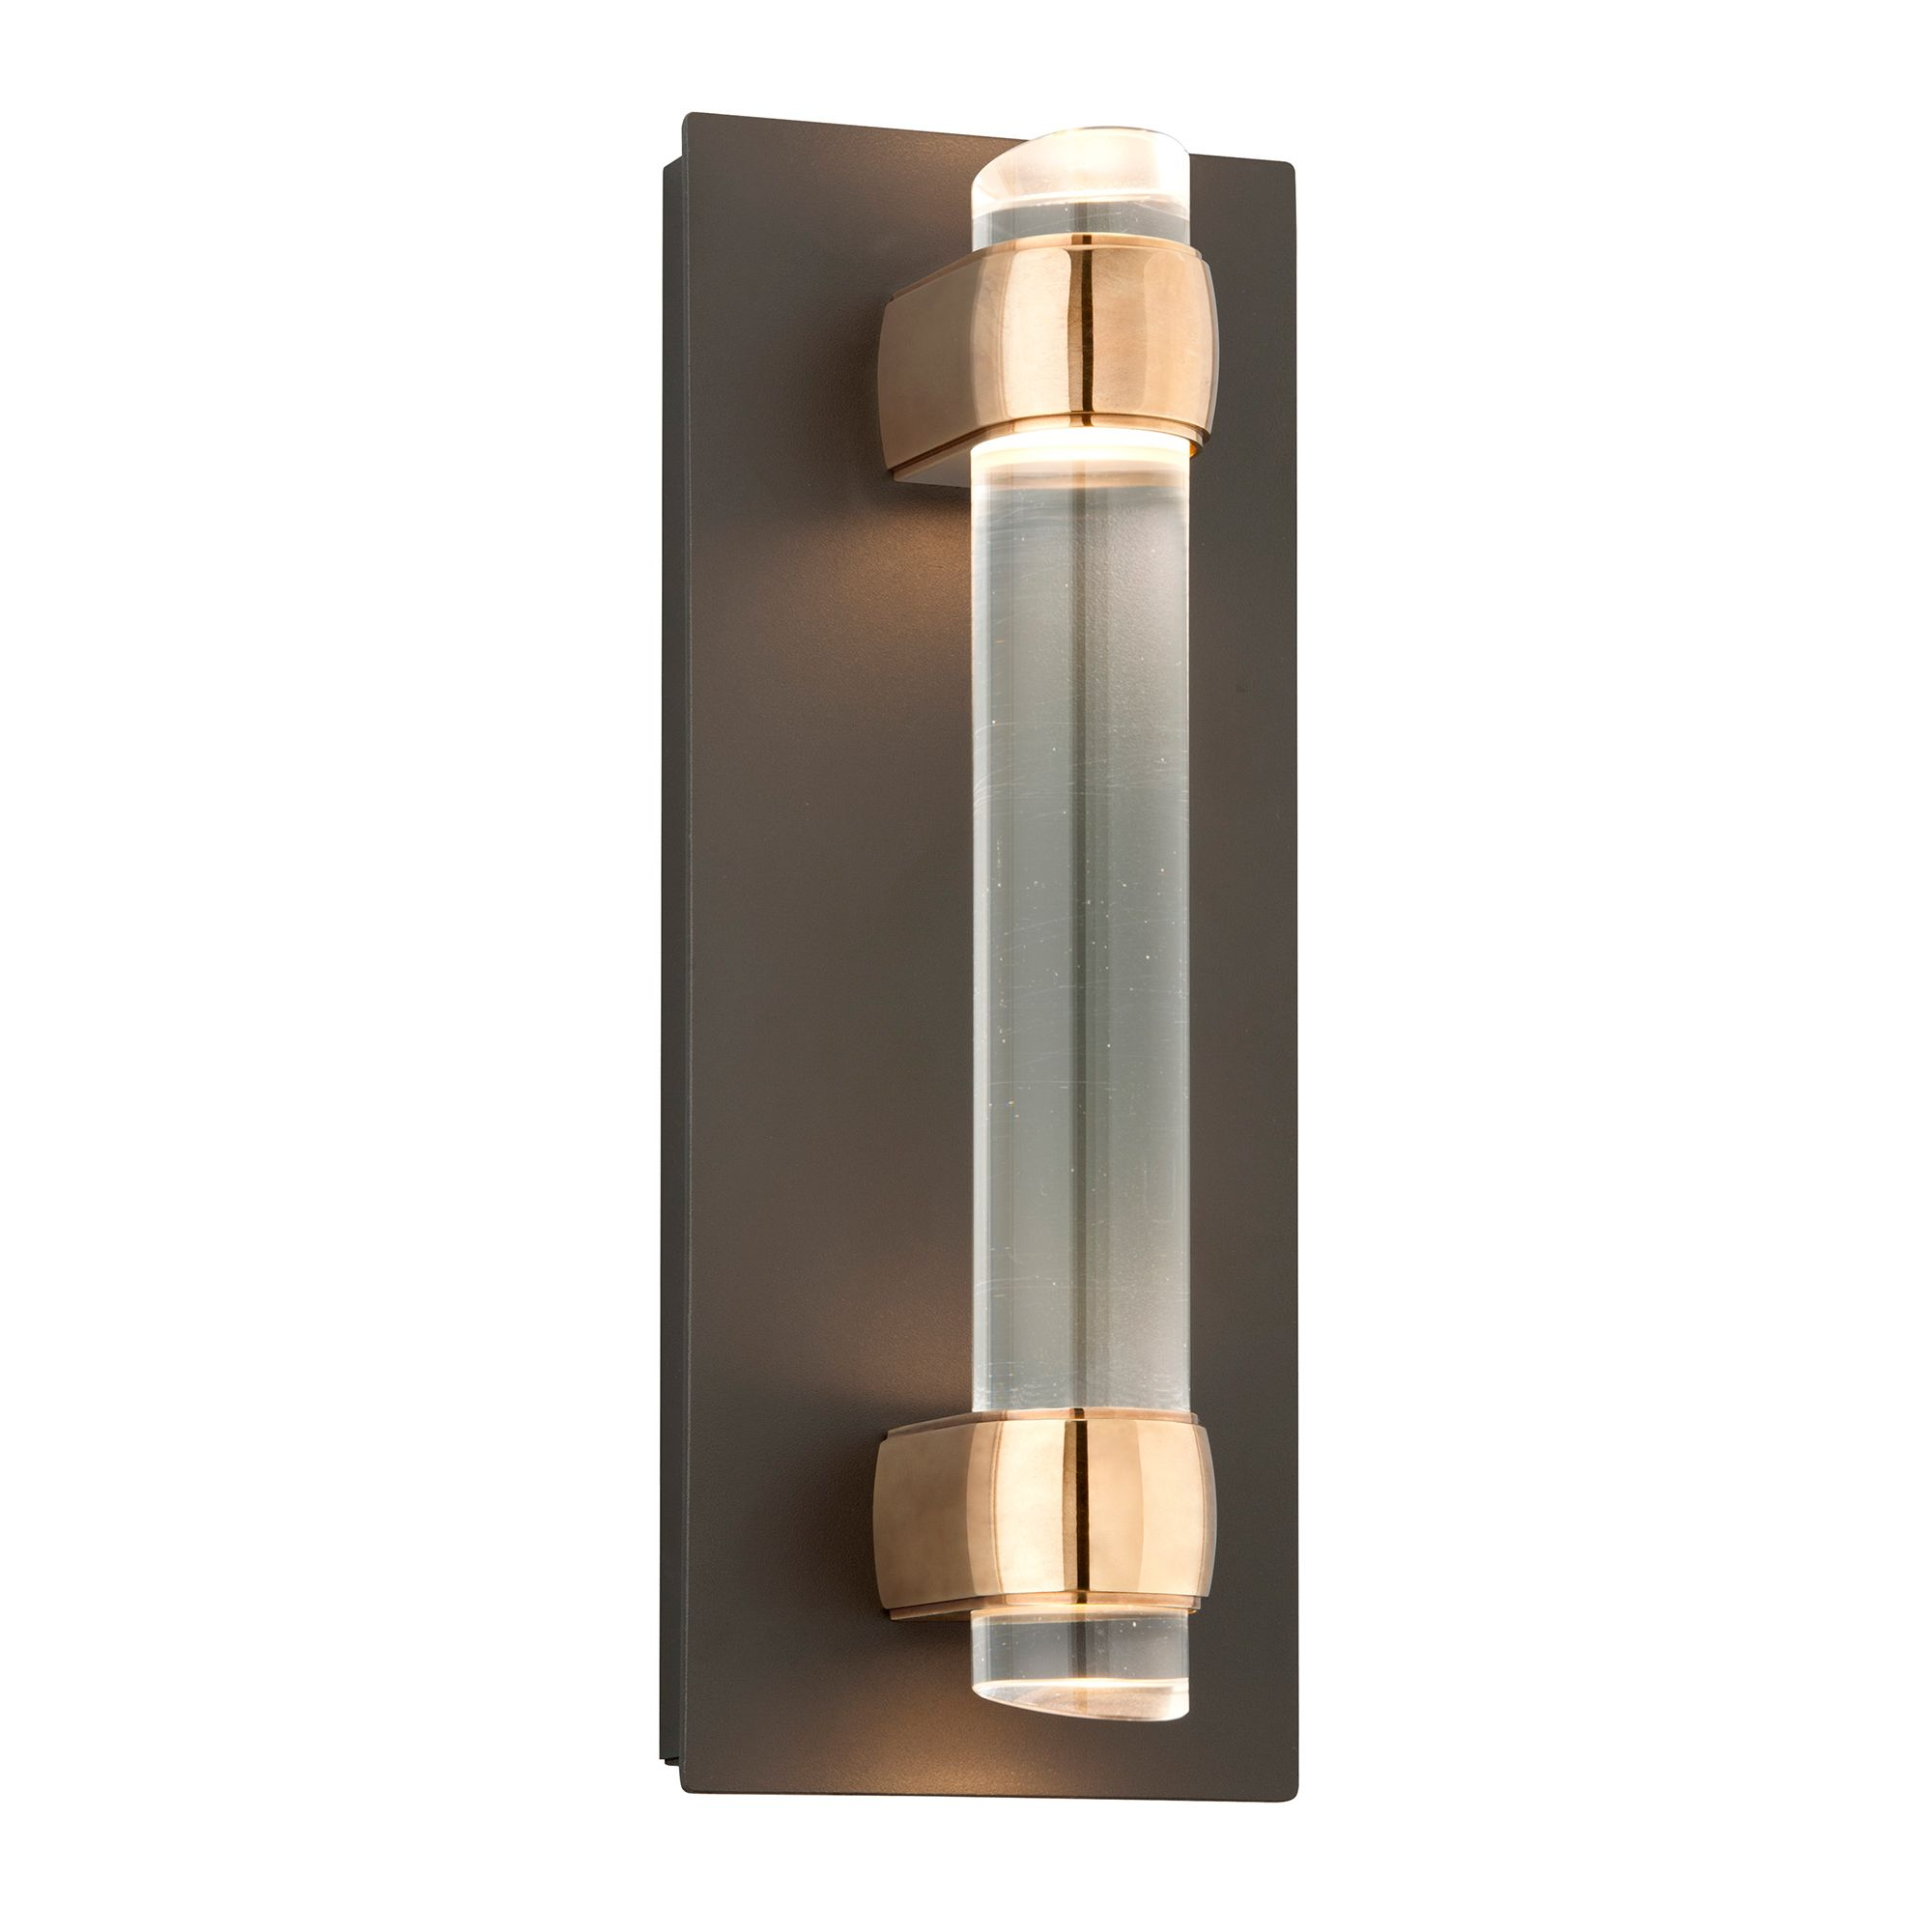 Utopia Outdoor Wall Light Comes With Clear Glass In A Bronze Finish One 12 Watt 120 Volt Led Mod Outdoor Wall Sconce Bronze Wall Sconce Outdoor Wall Lighting